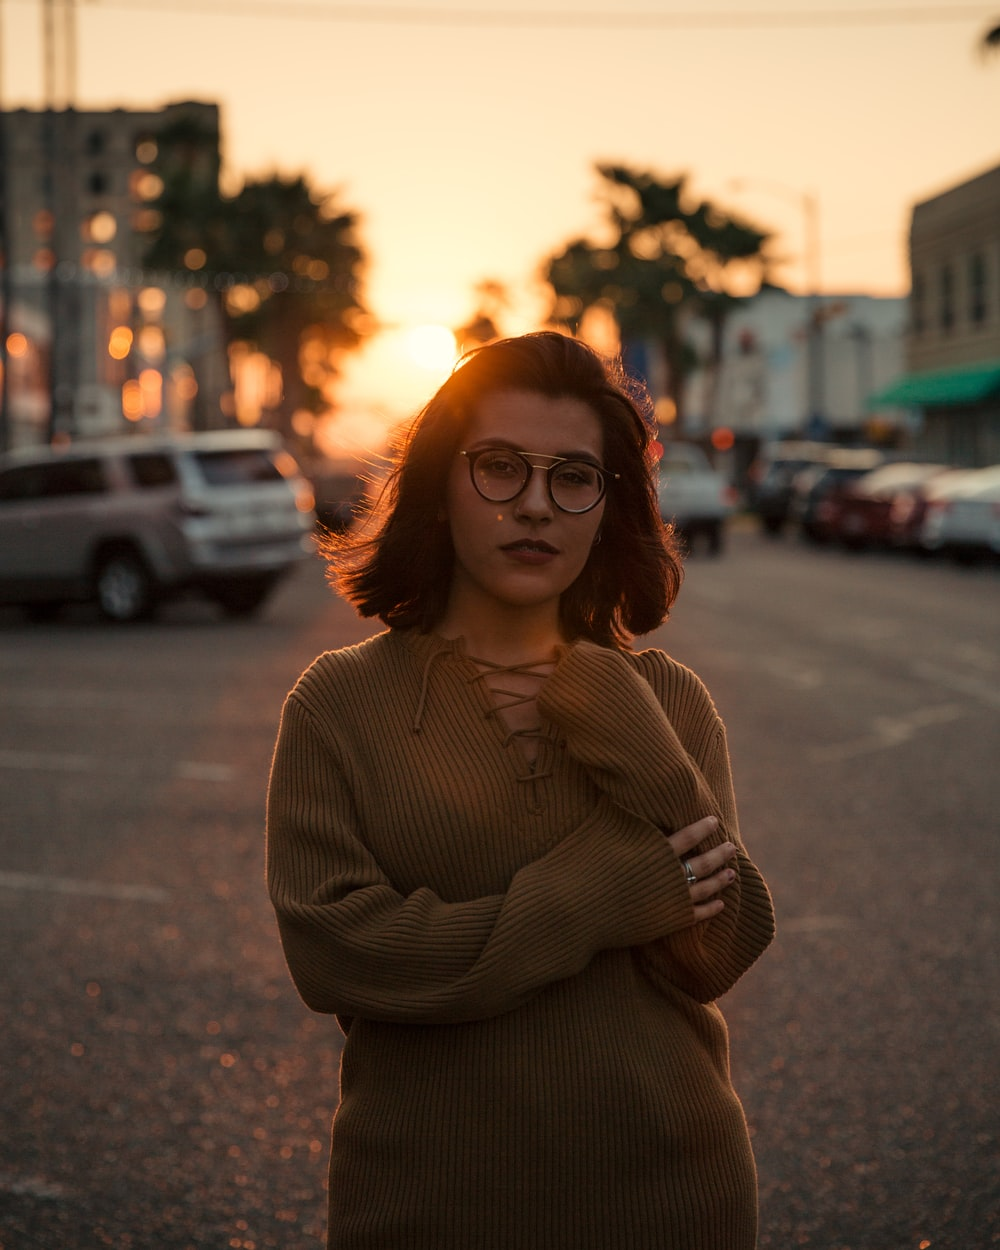 woman standing on road near vehicles during golden hour